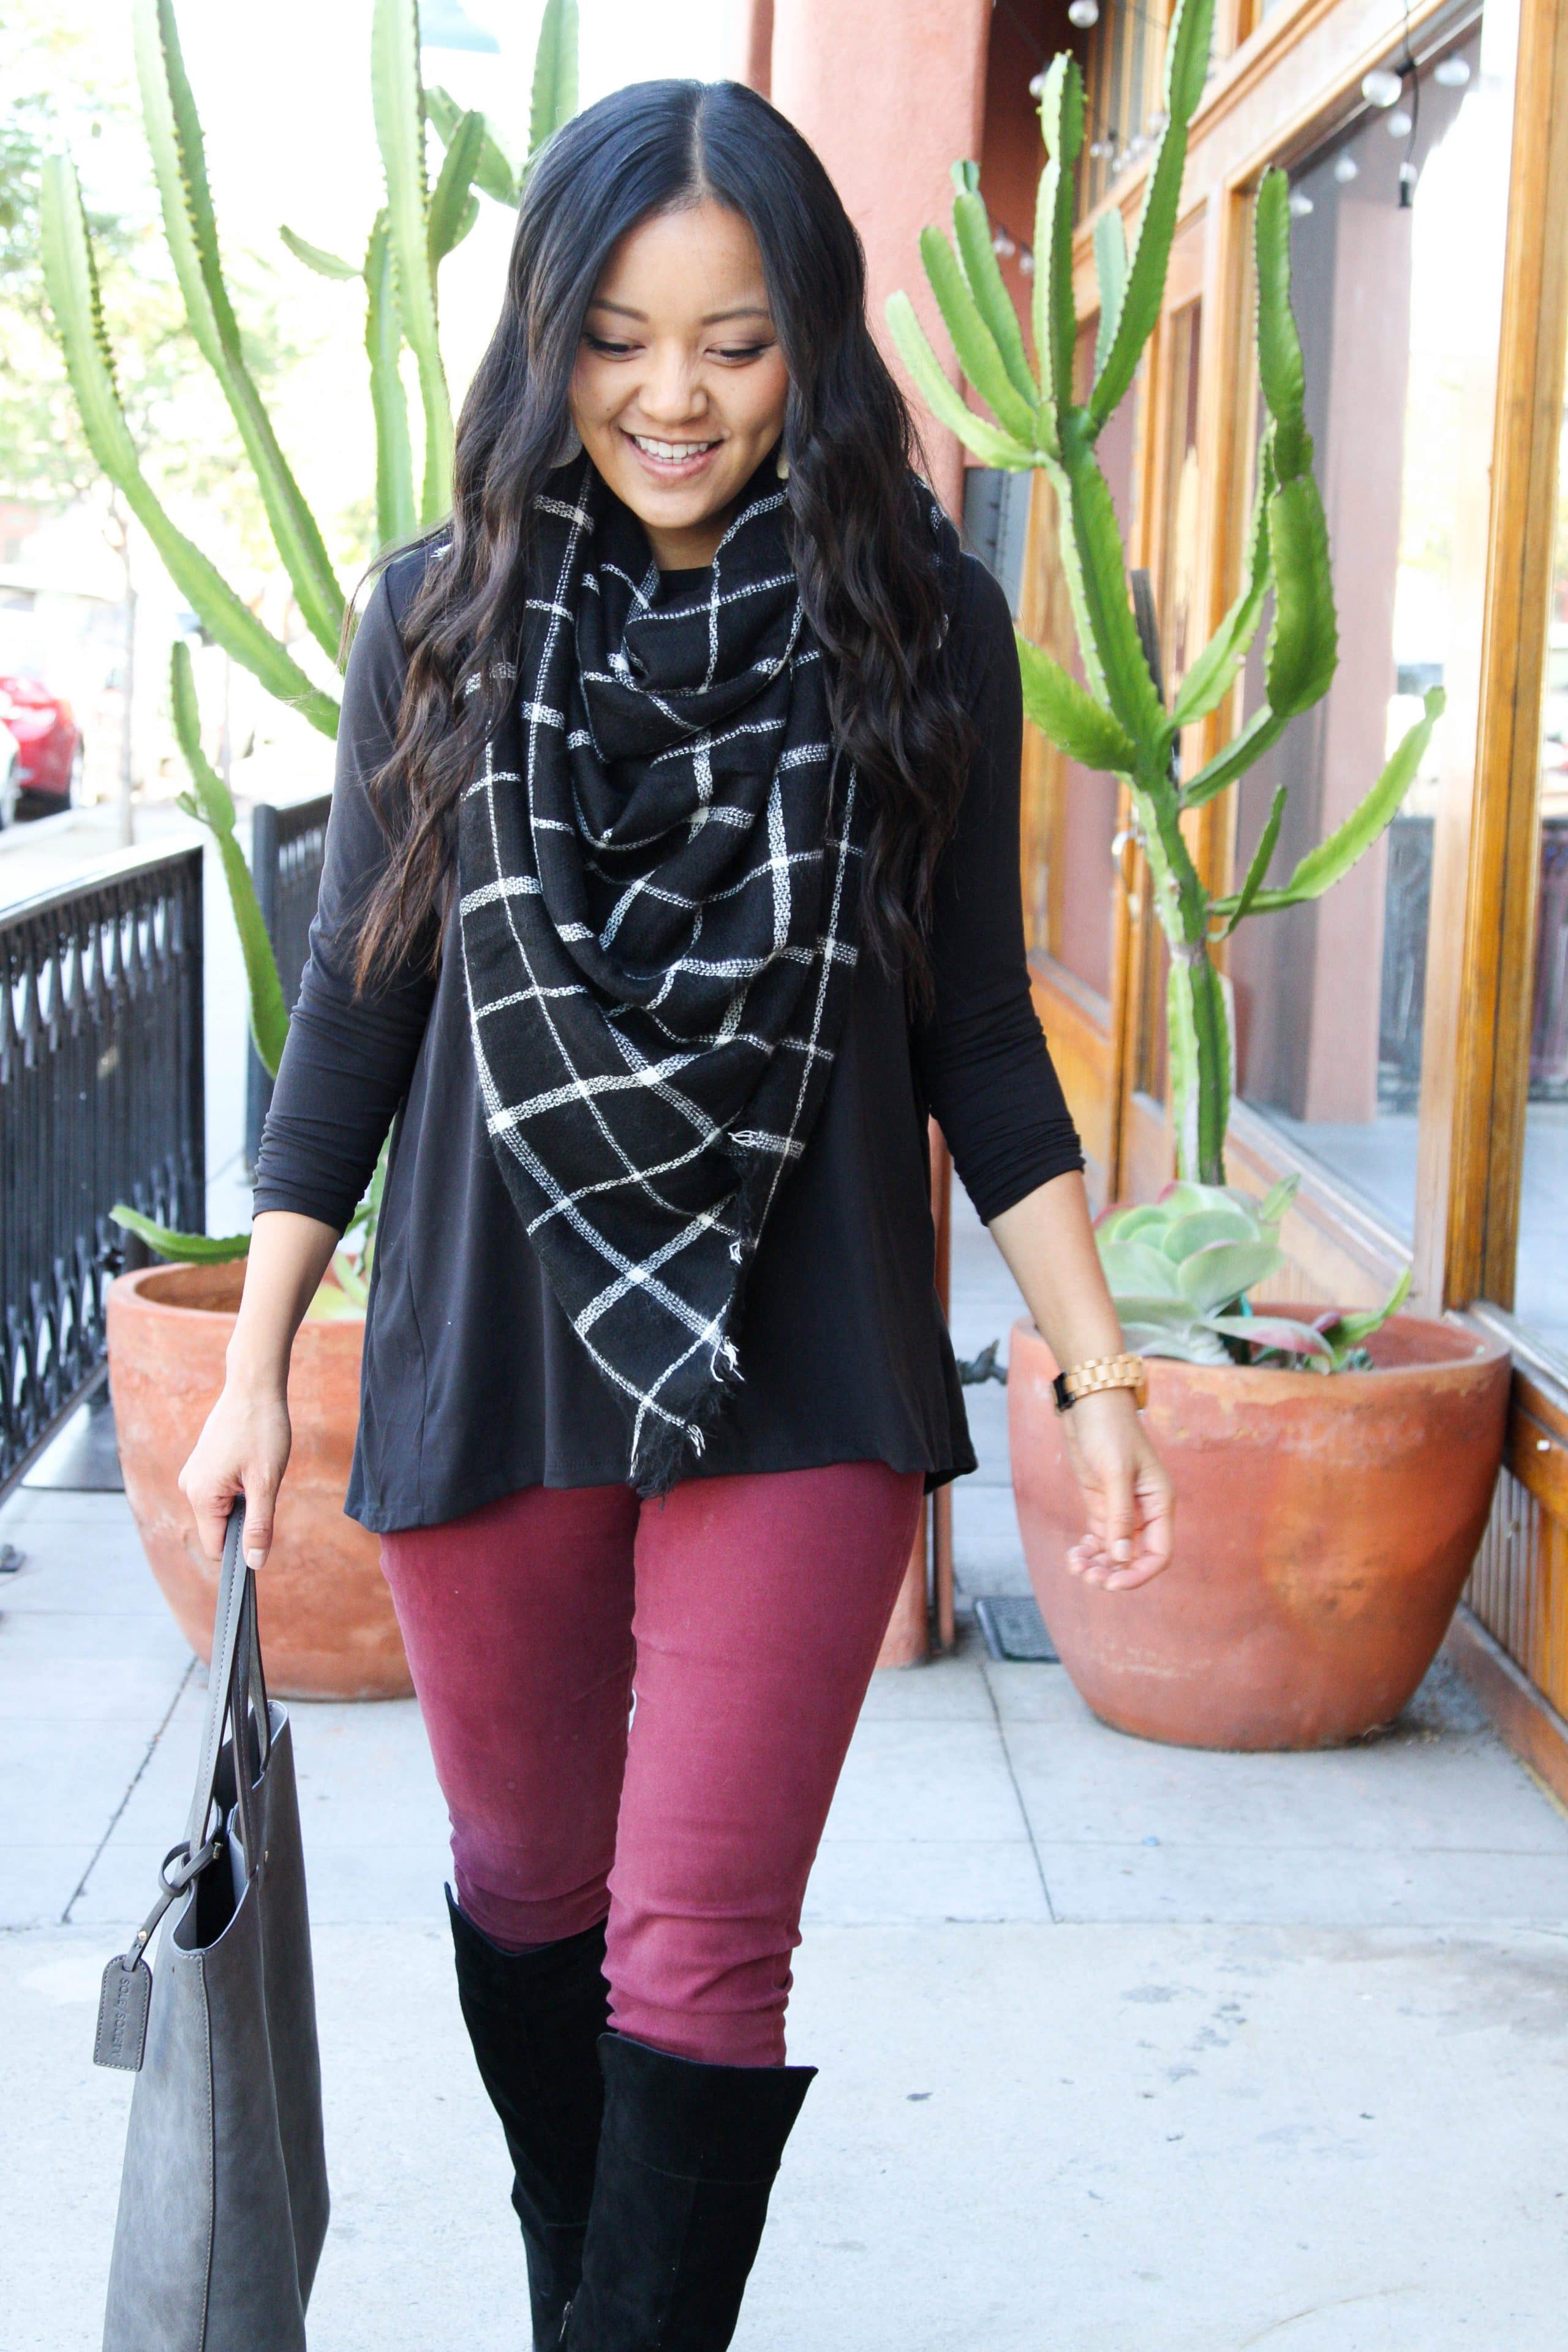 Black Boots + Black Shirt + Blanket Scarf + Maroon Pants + Gray Tote